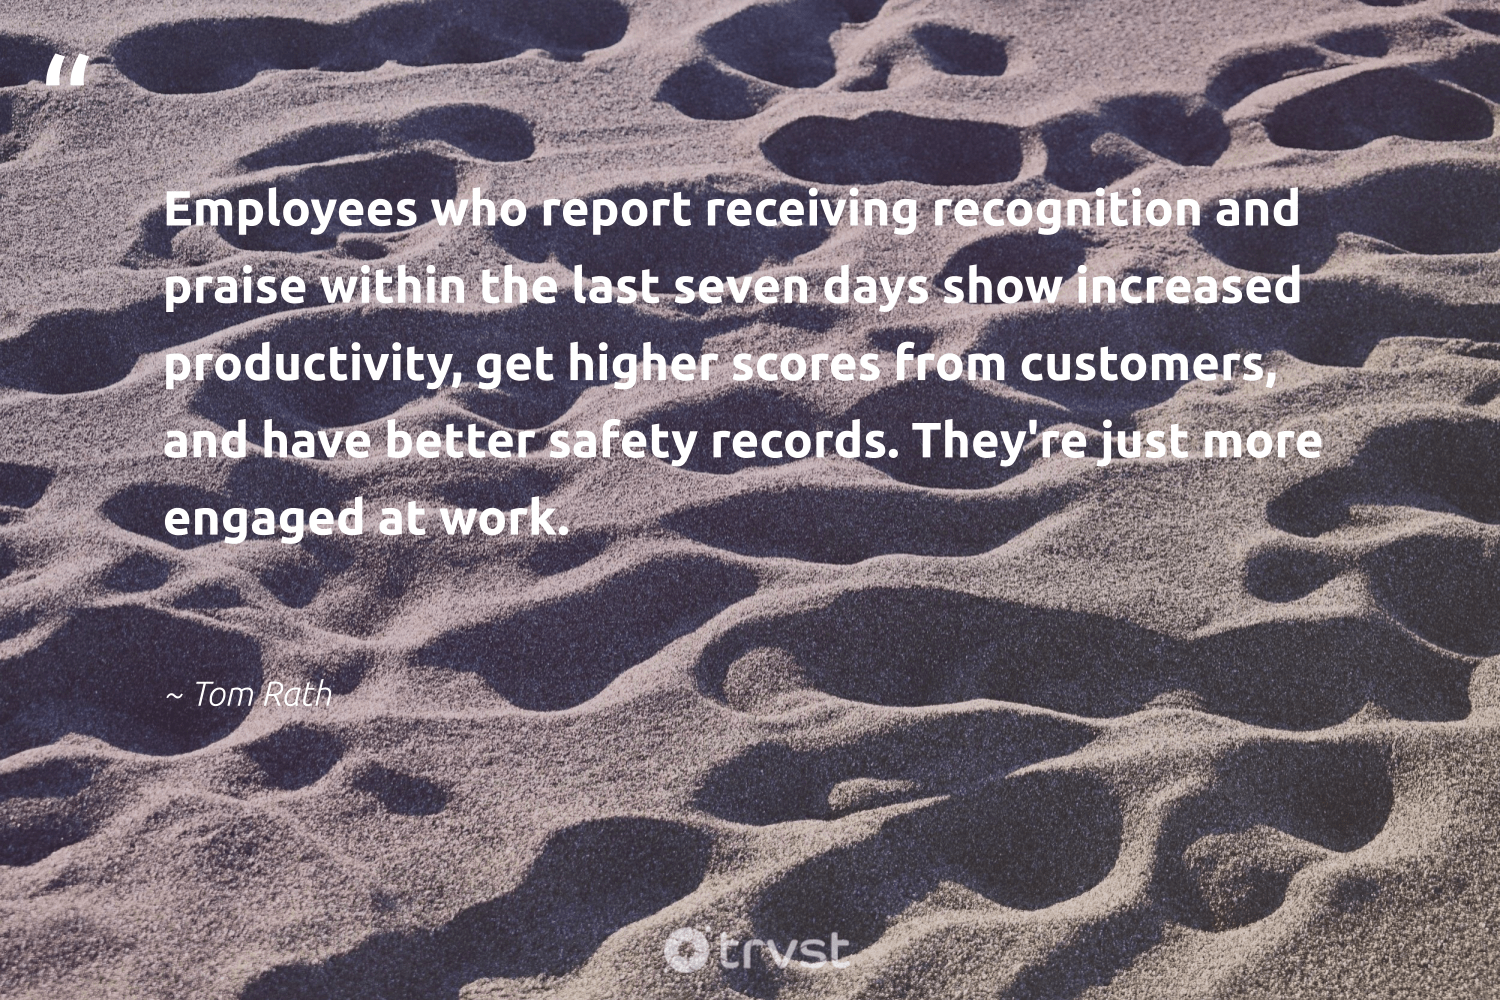 """""""Employees who report receiving recognition and praise within the last seven days show increased productivity, get higher scores from customers, and have better safety records. They're just more engaged at work.""""  - Tom Rath #trvst #quotes #customers #productivity #motivation #productive #futureofwork #dosomething #goals #domore #begreat #socialchange"""